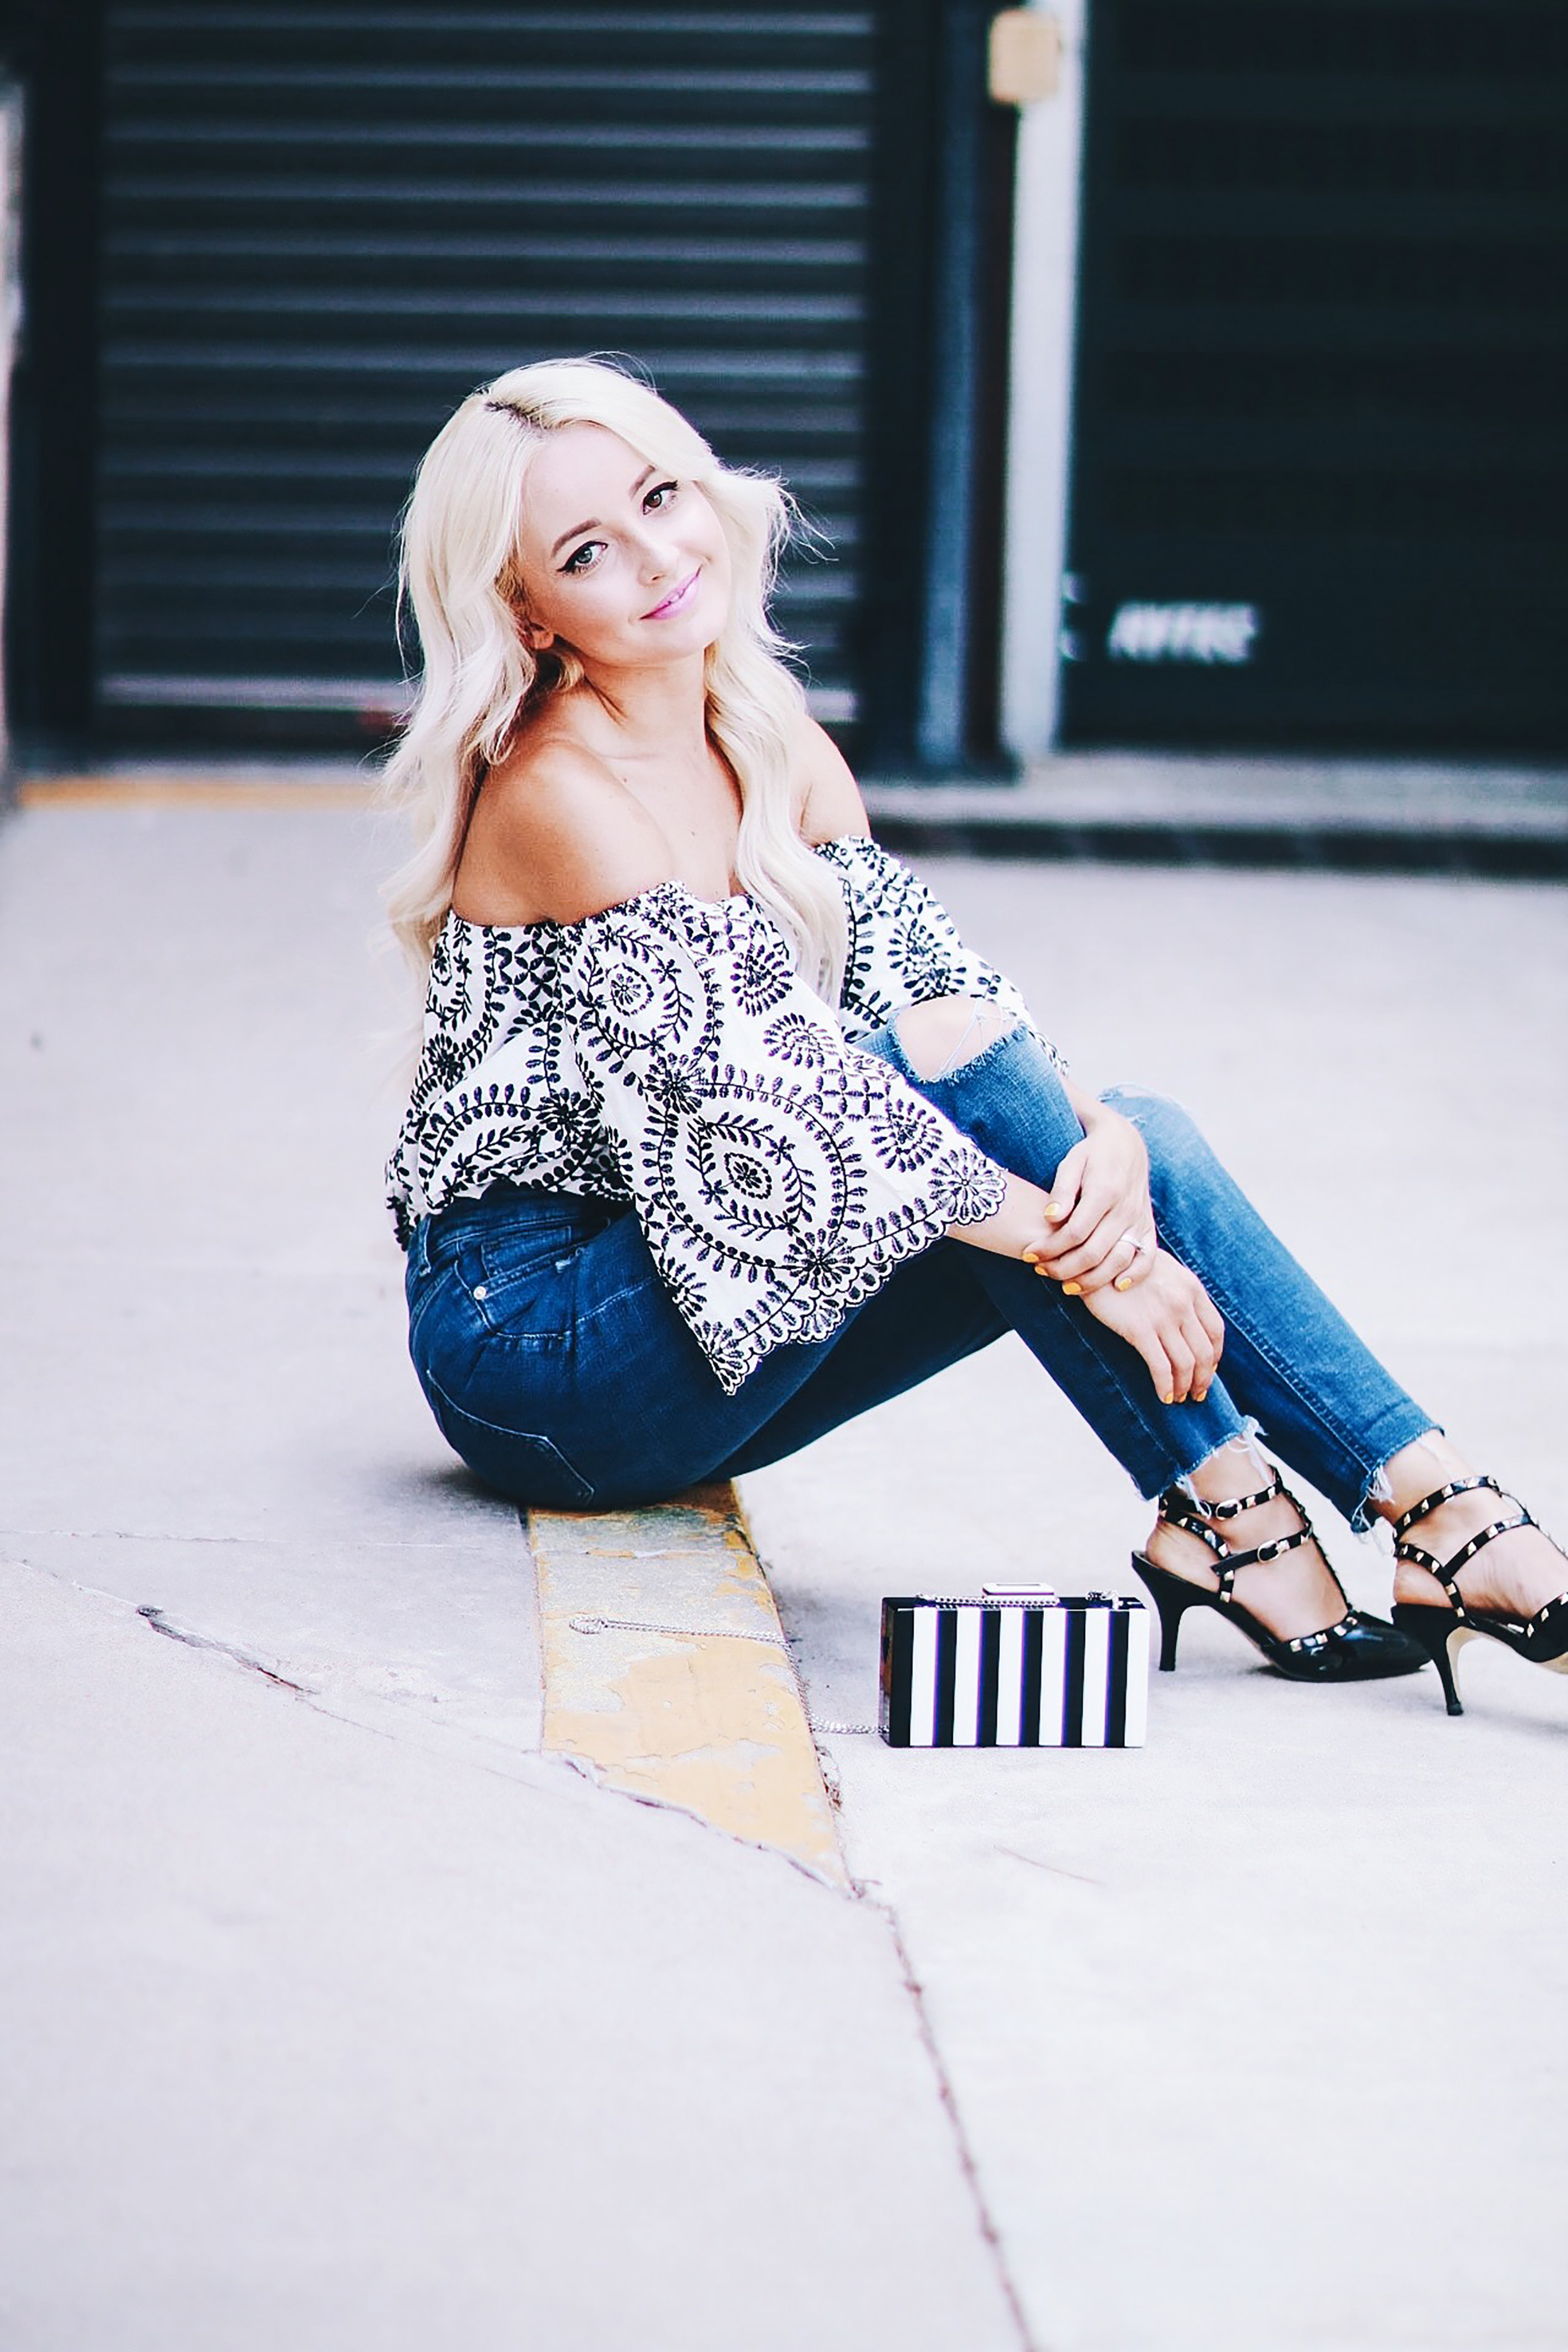 Alena Gidenko of modaprints.com styles an off the shoulder printed top with boyfriend jeans and studded black heels